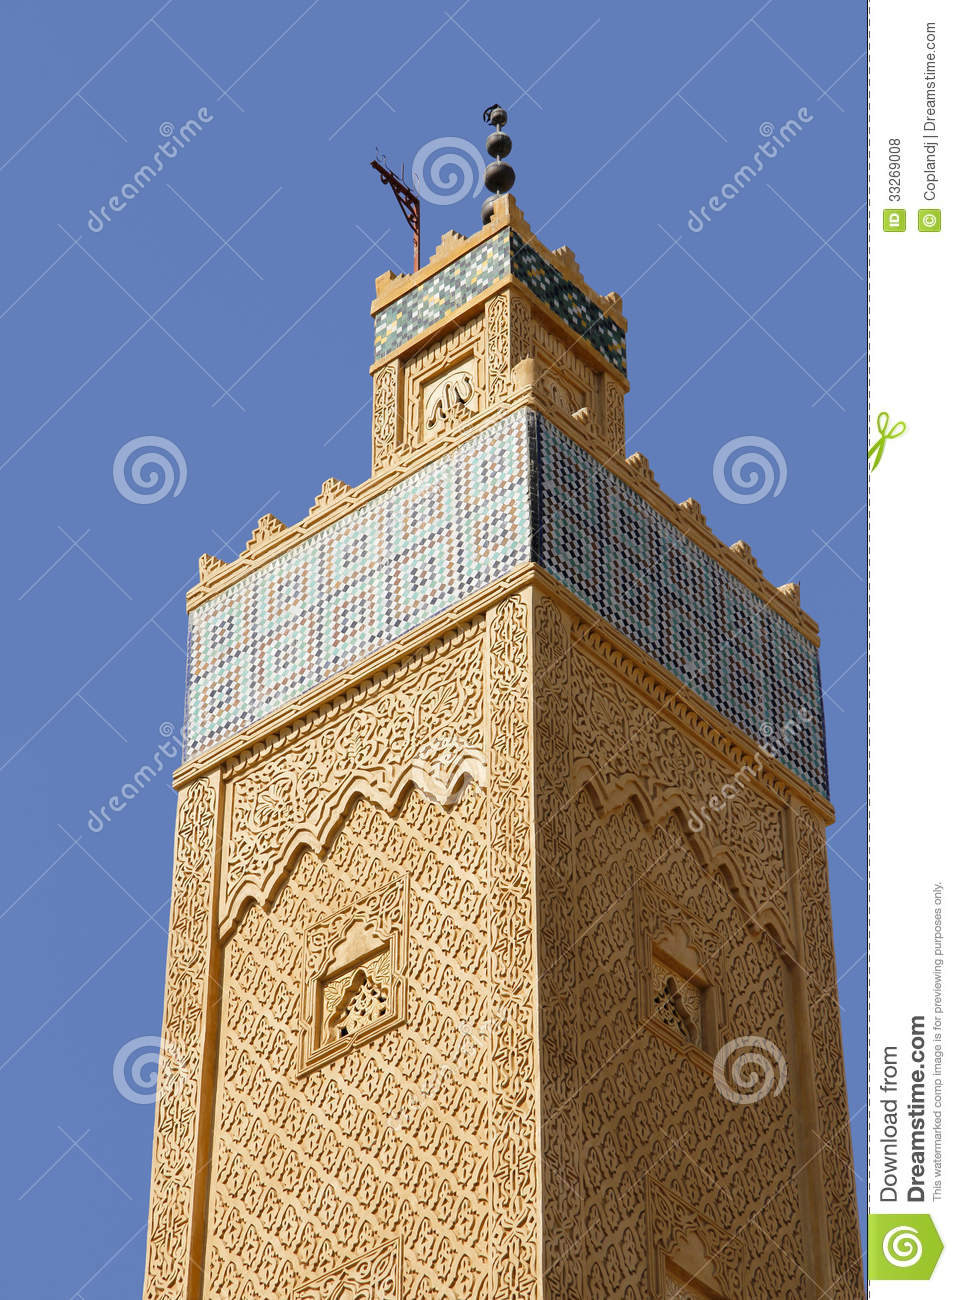 Morocco meknes mosque minaret royalty free stock photos for Arabesque style decoration